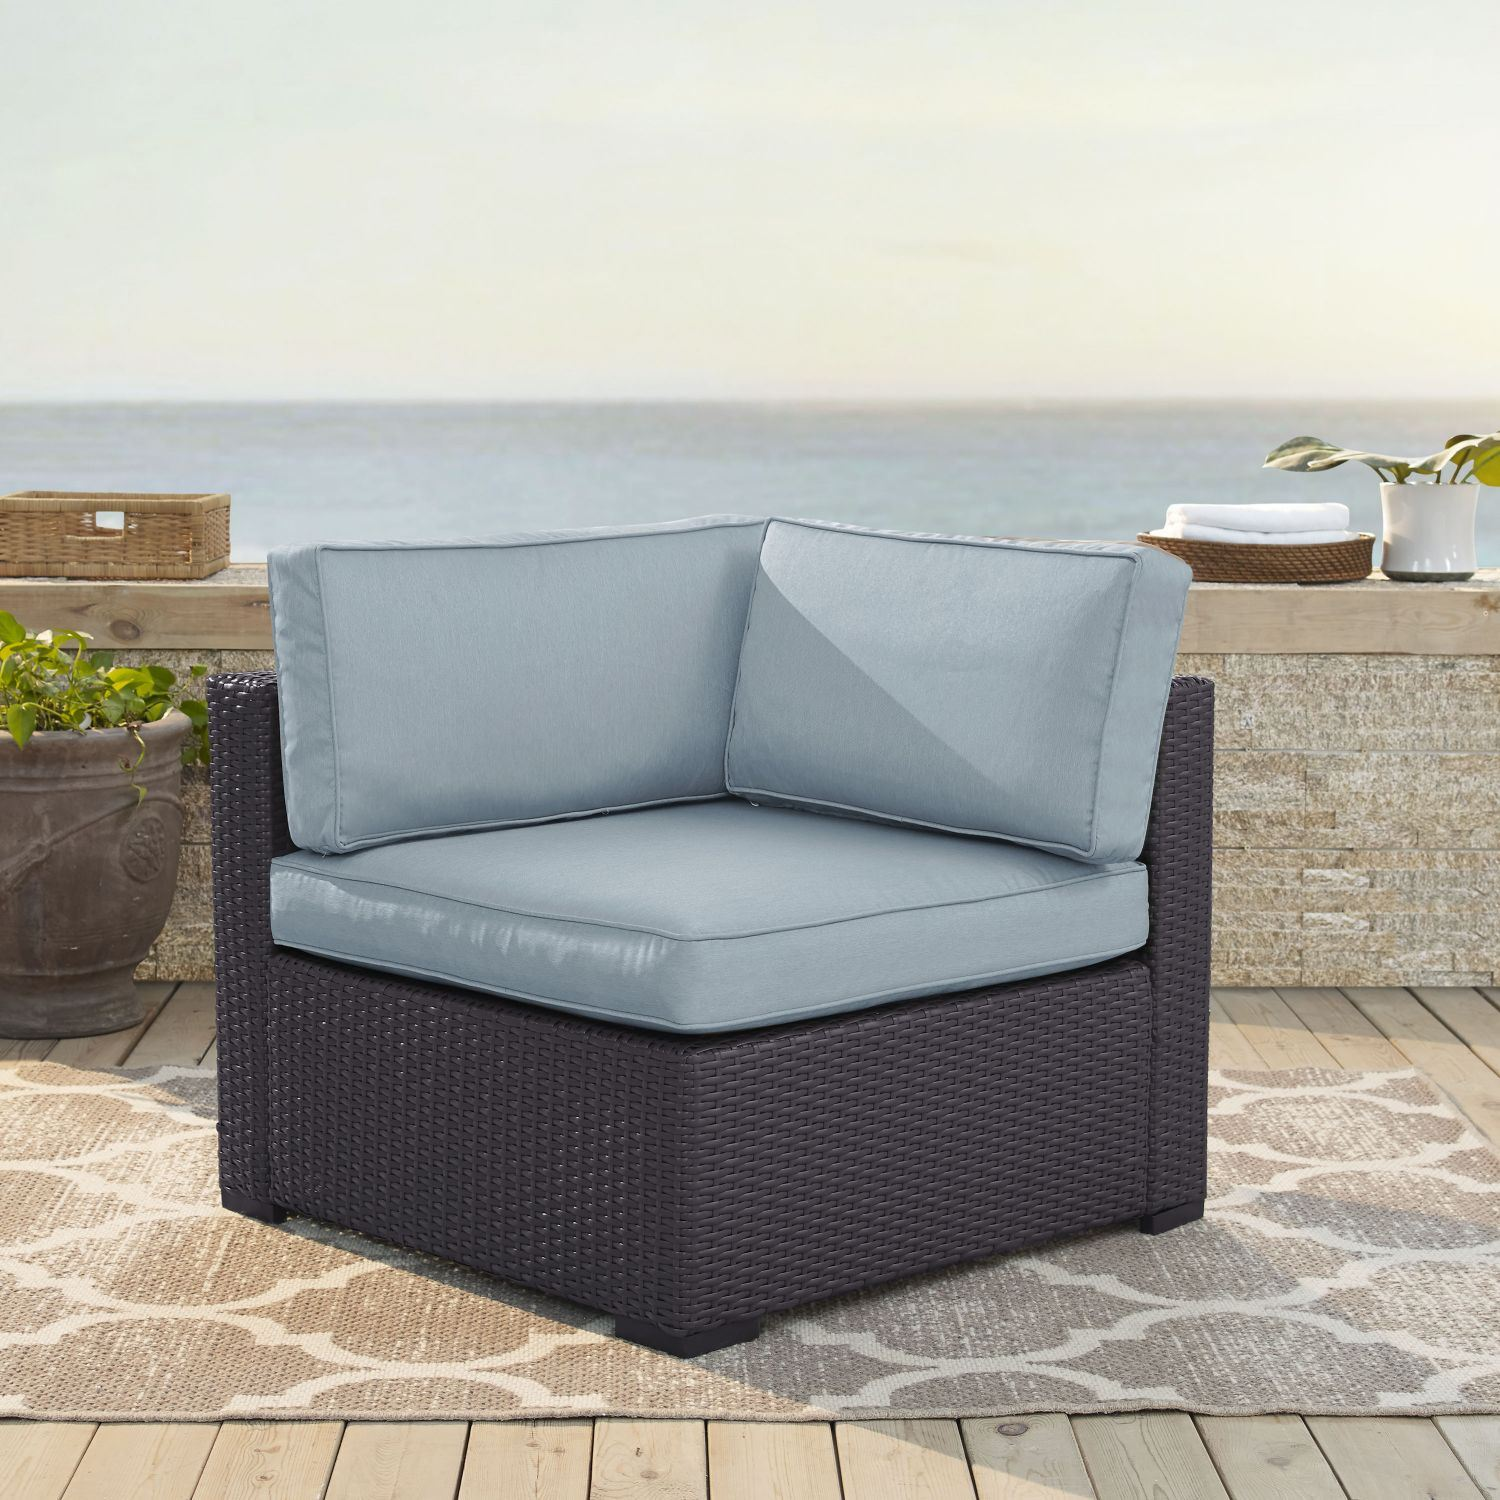 Picture of BISCAYNE CORNER CHAIR W/BLUE CUSHIONS